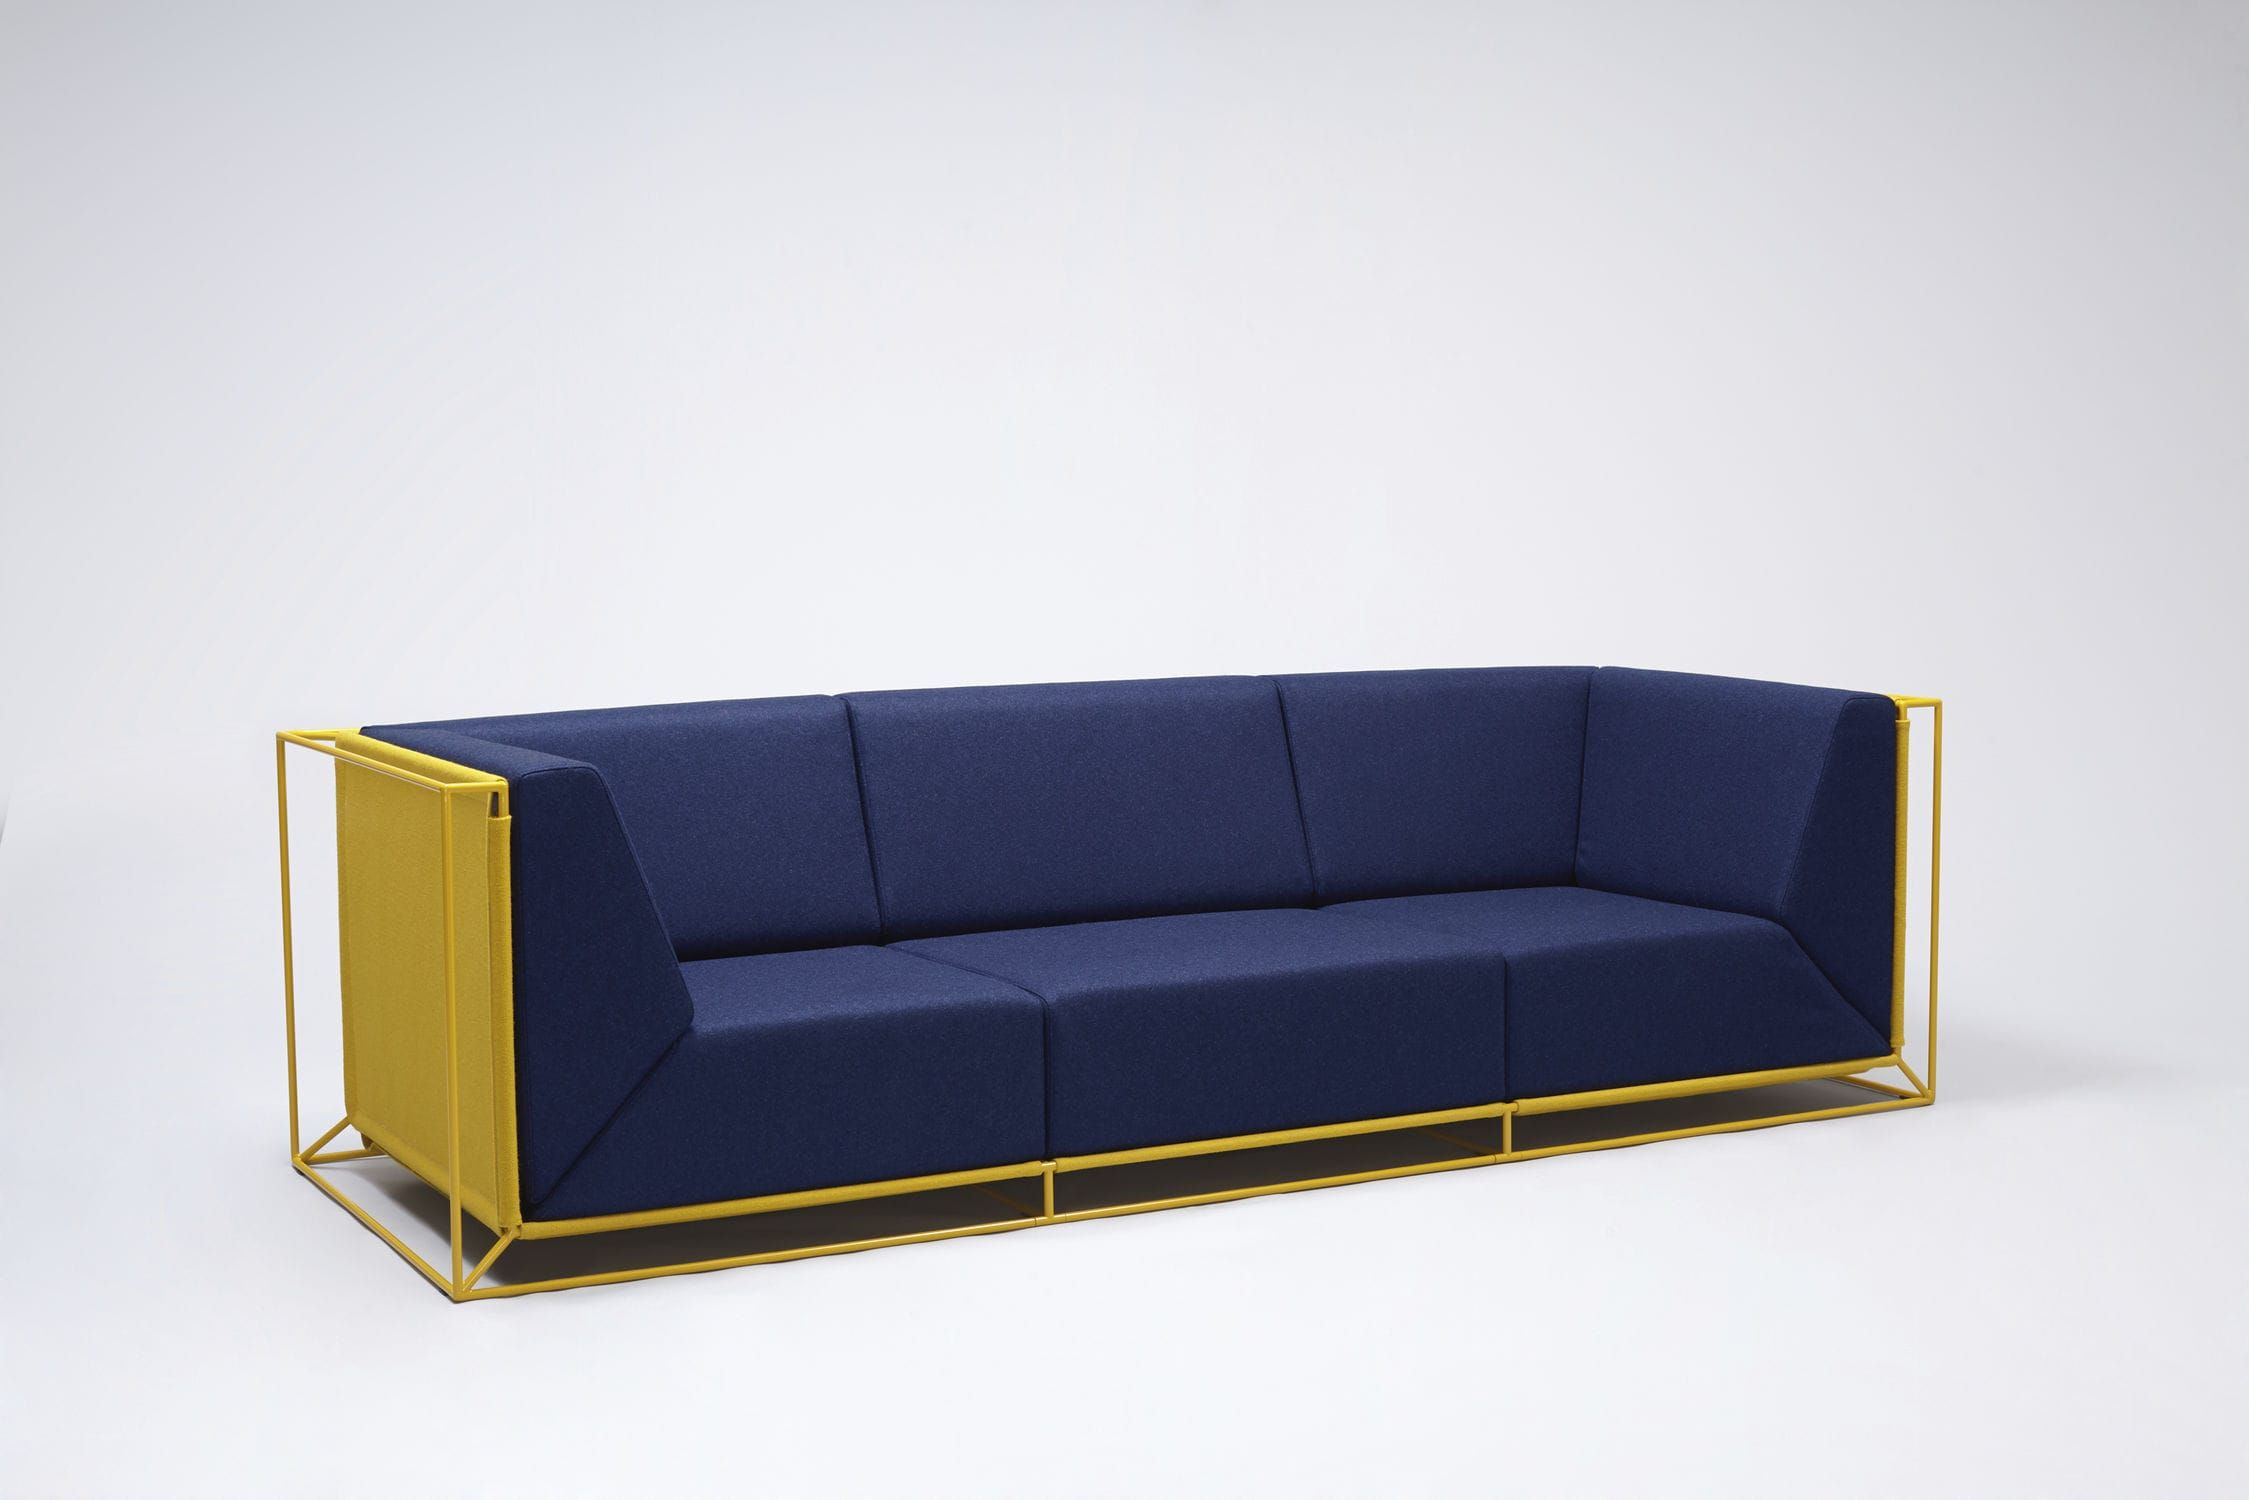 Good Modular Sofa / Contemporary / Fabric / By Philippe Nigro FLOATING Comforty Awesome Ideas